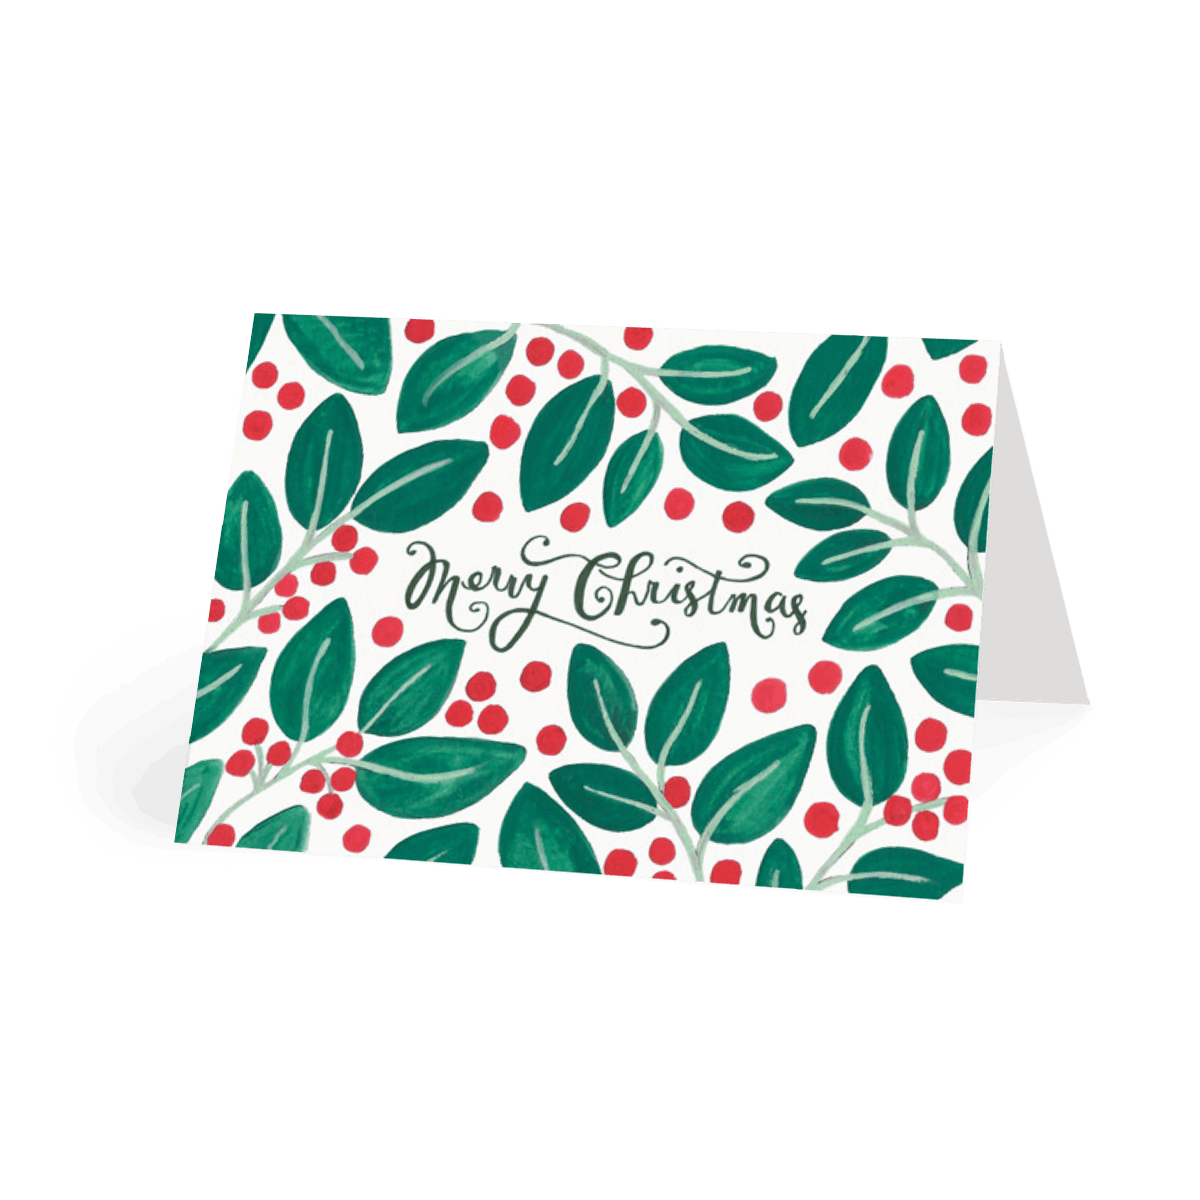 Https%3a%2f%2fwww.papier.com%2fproduct image%2f24711%2f14%2fchristmas berries leaves 6175 front 1537287181.png?ixlib=rb 1.1